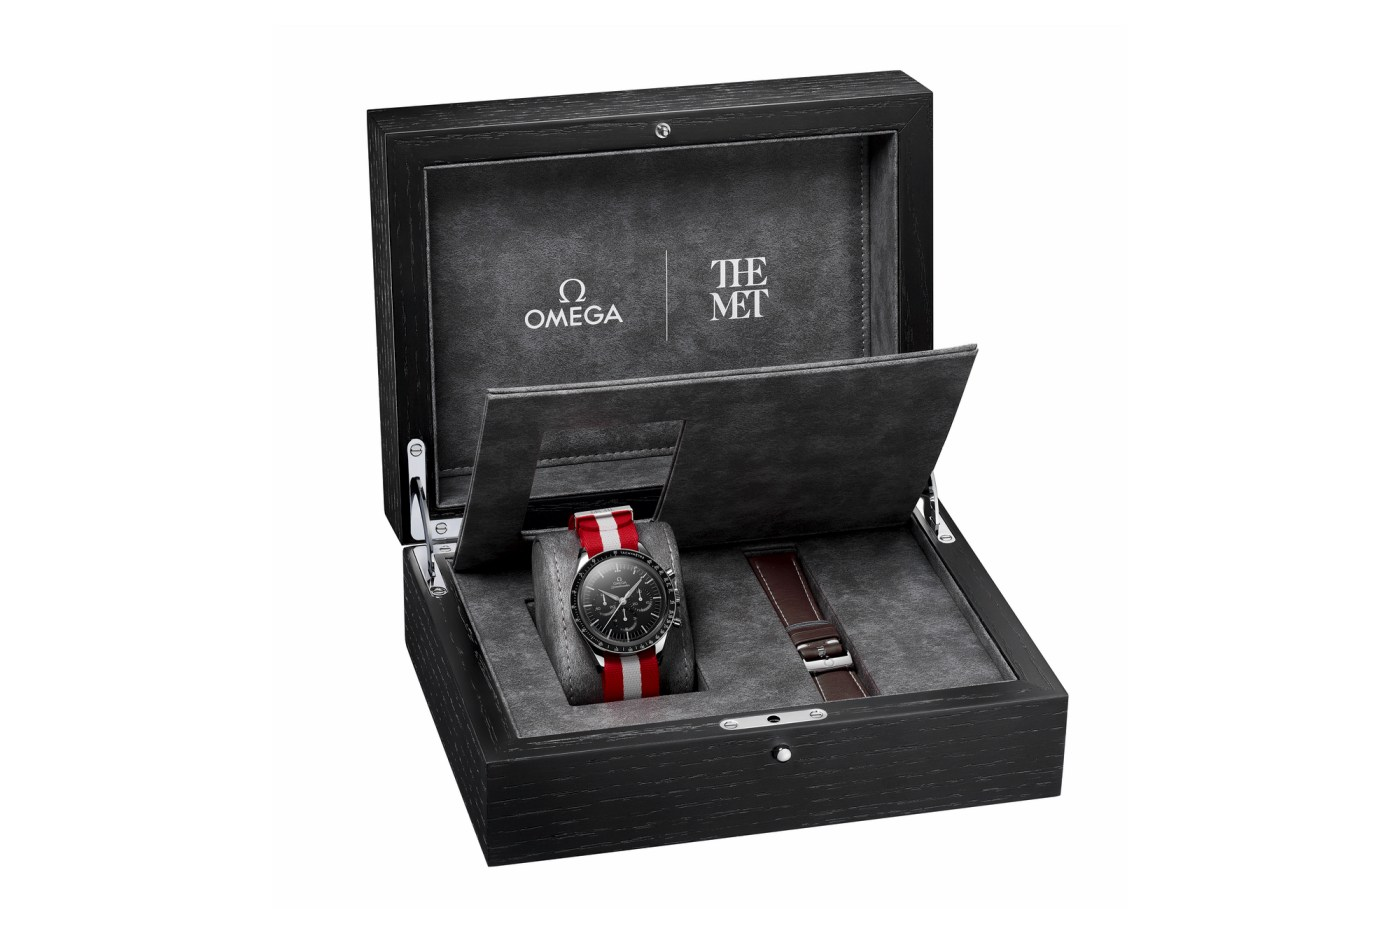 Omega Speedmaster The Met Limited Edition box 2019